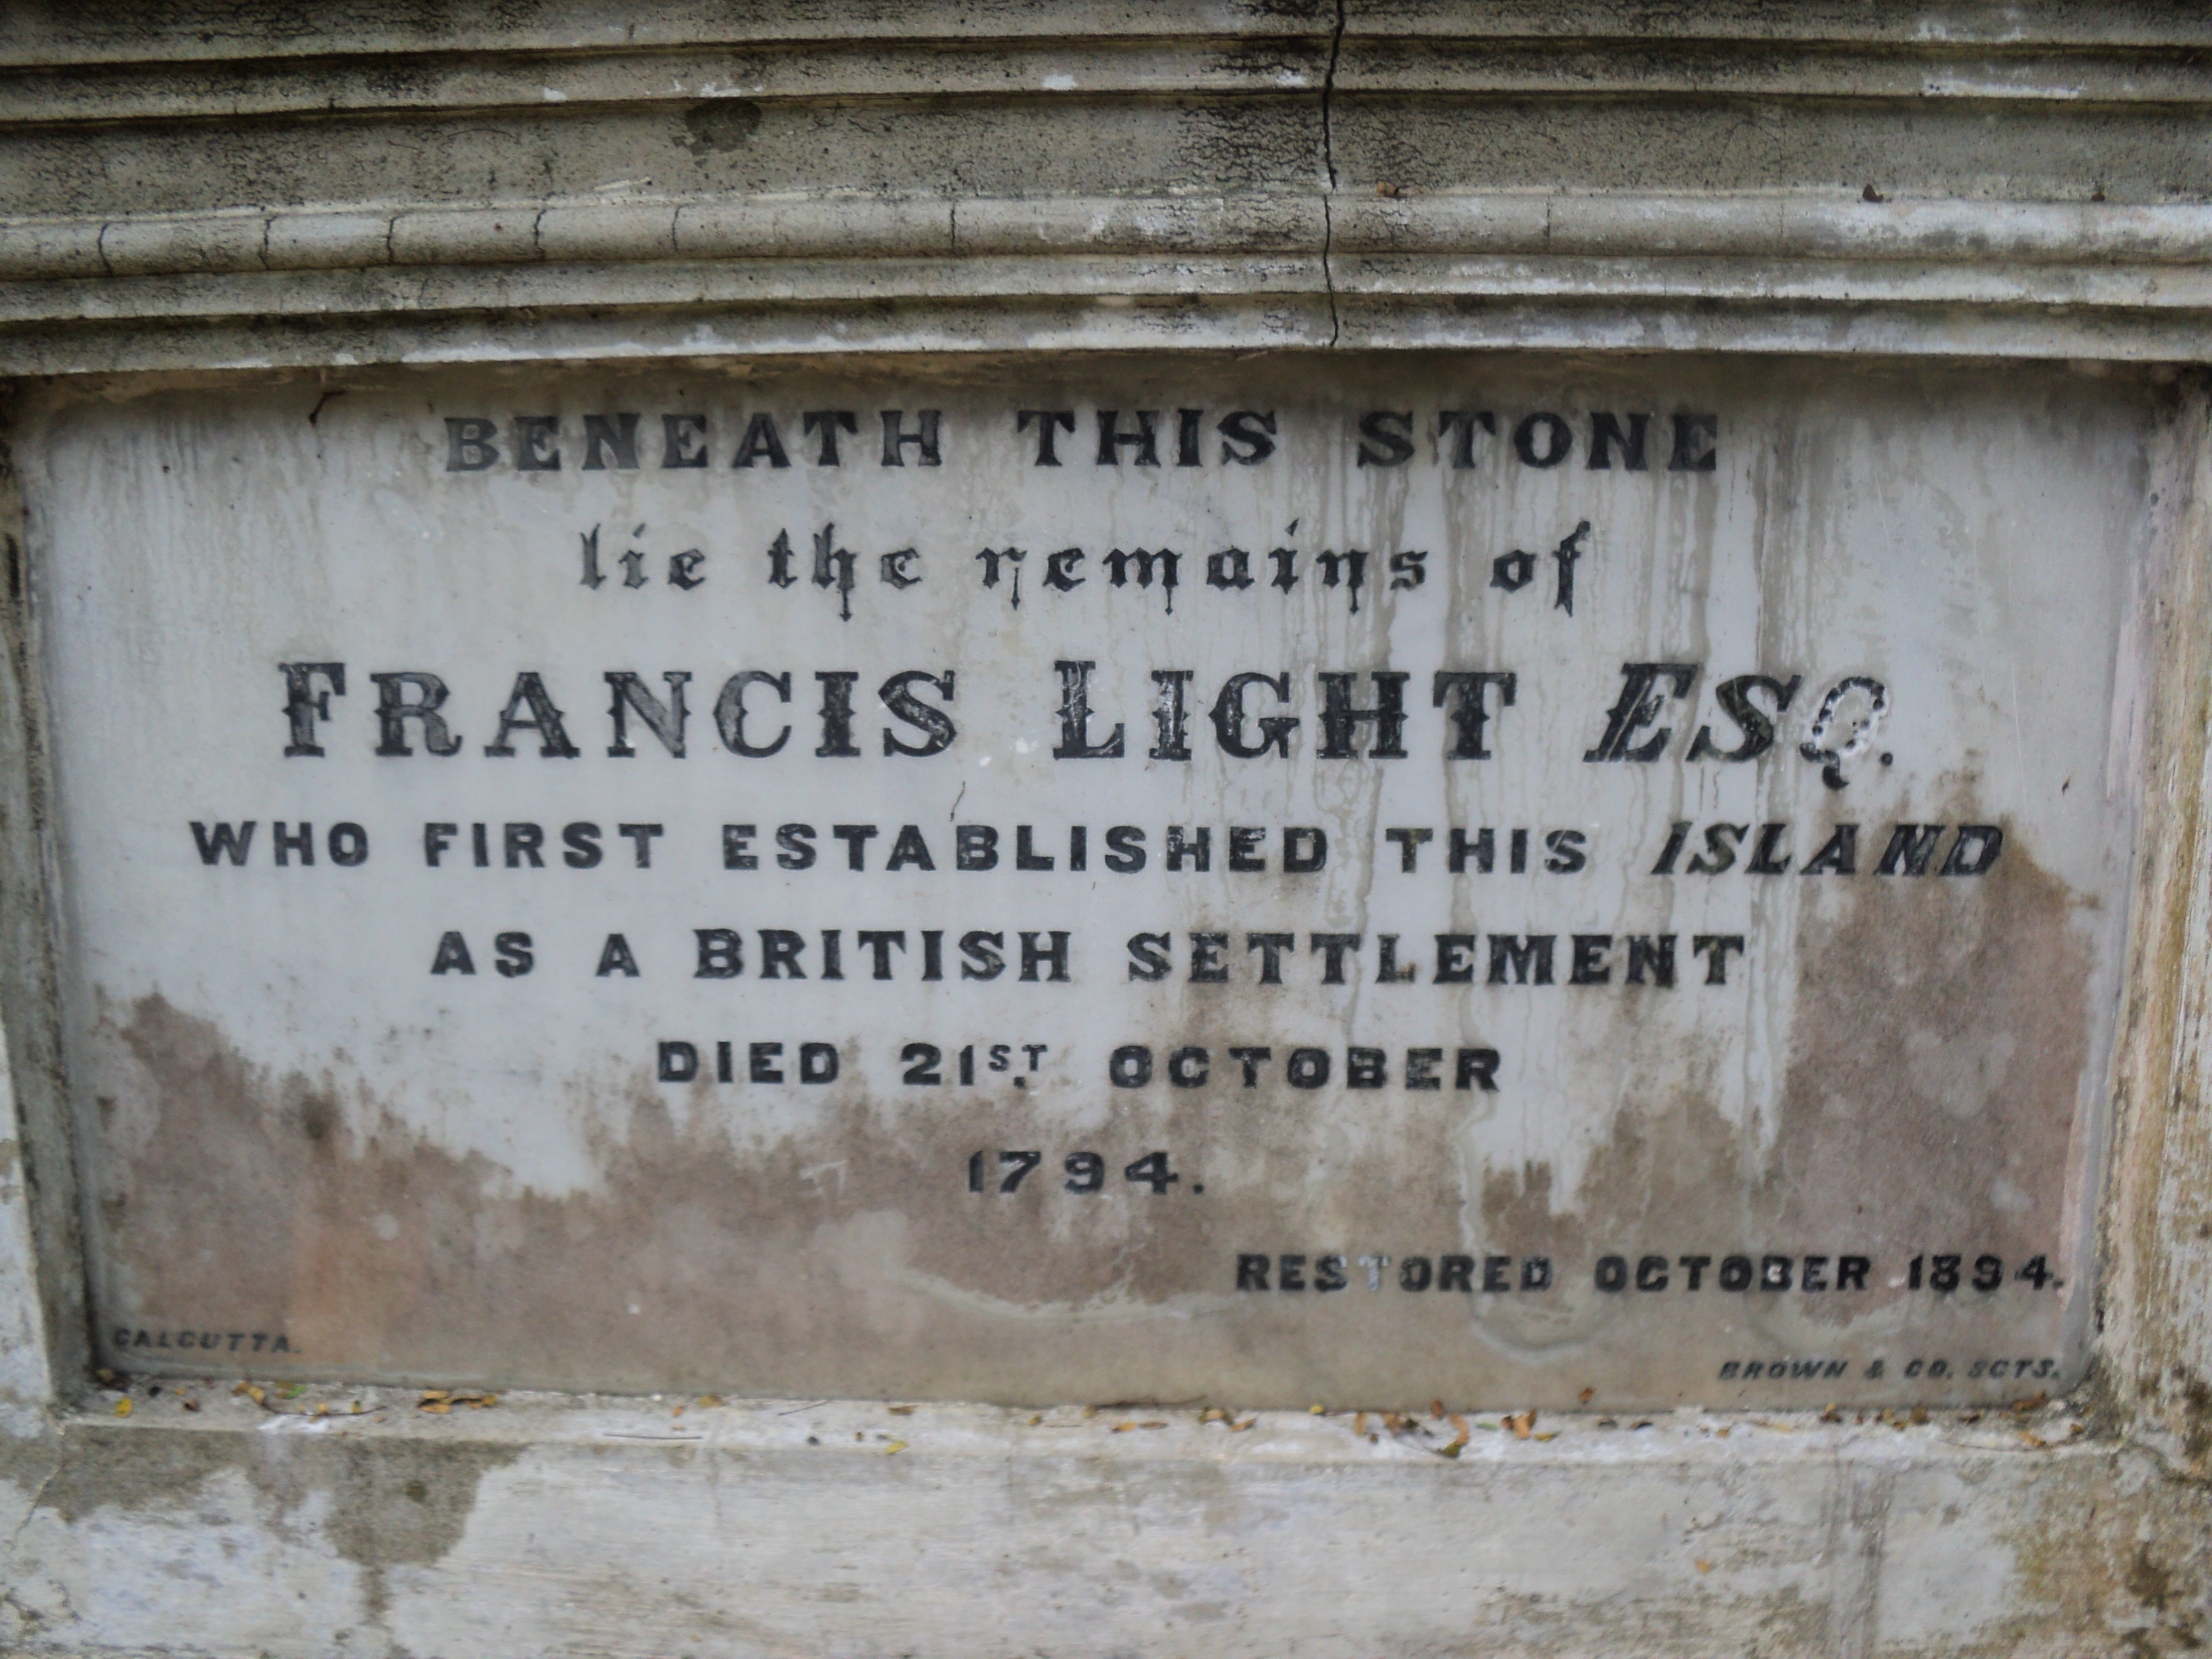 Francis Light's grave in the Protestant Cemetery at George Town, Penang, Photo taken by Mark Joseph Jochim on July 28, 2011.